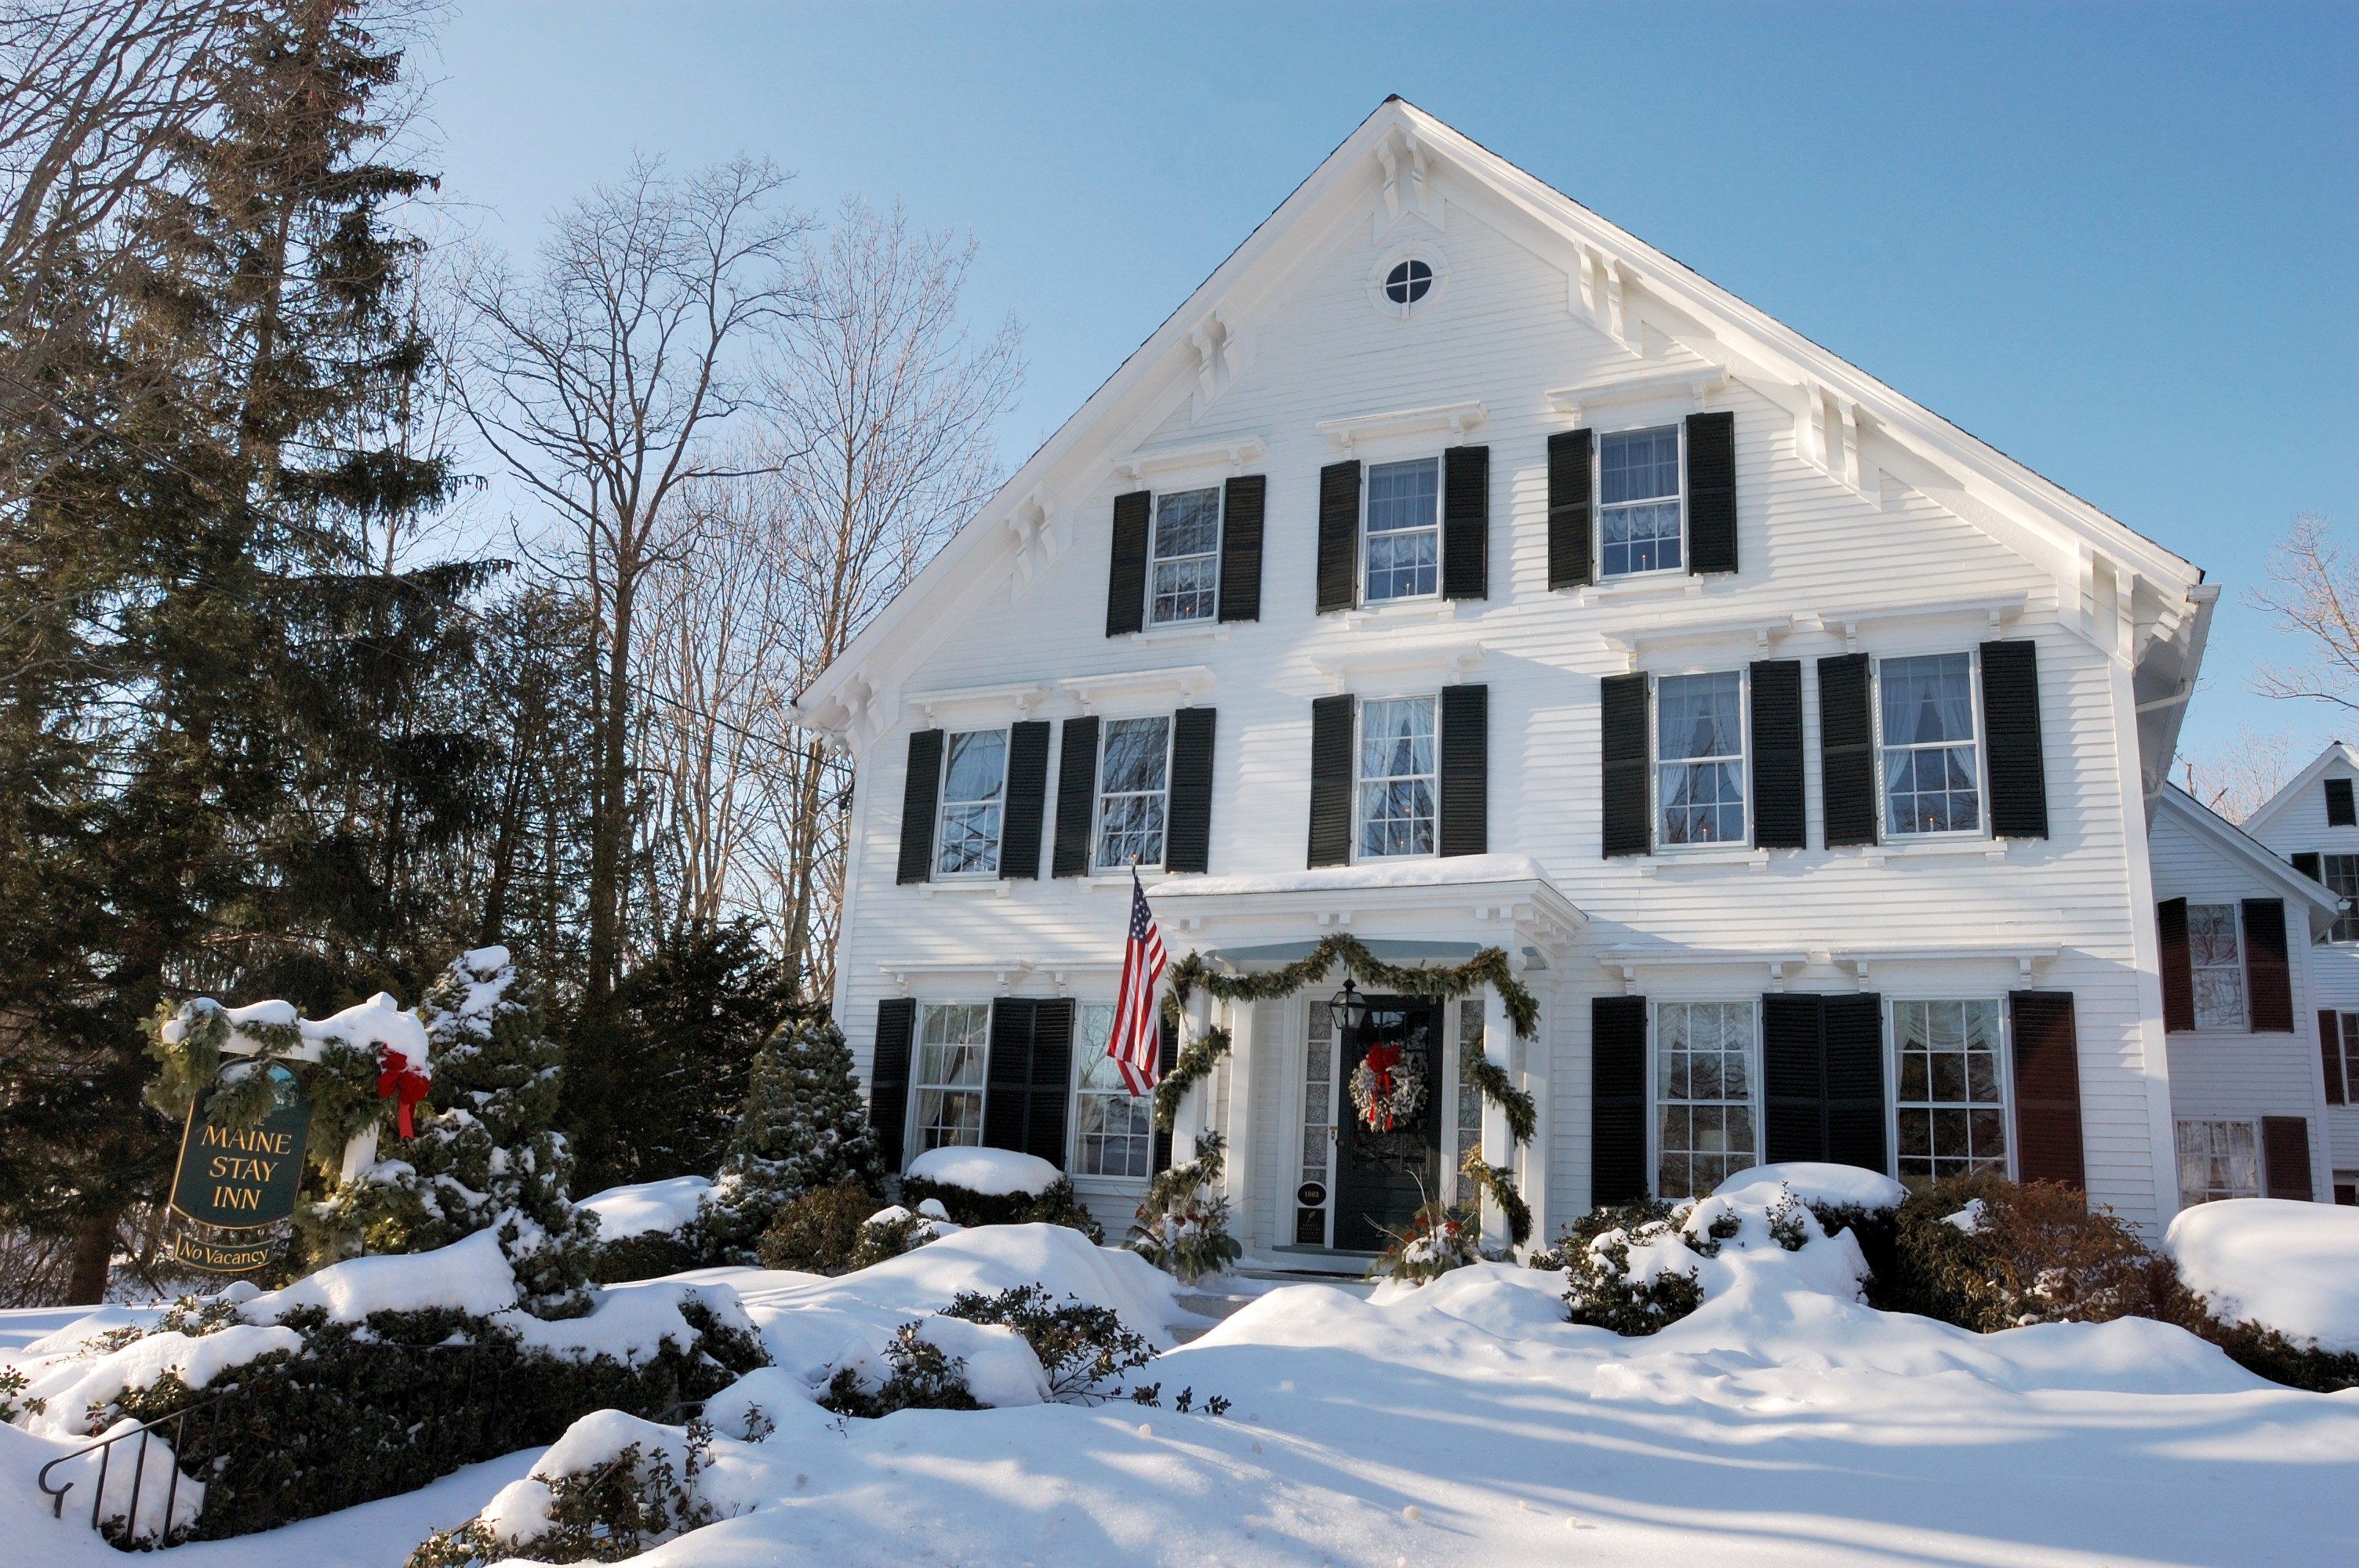 Camden Maine Stay Inn, winter